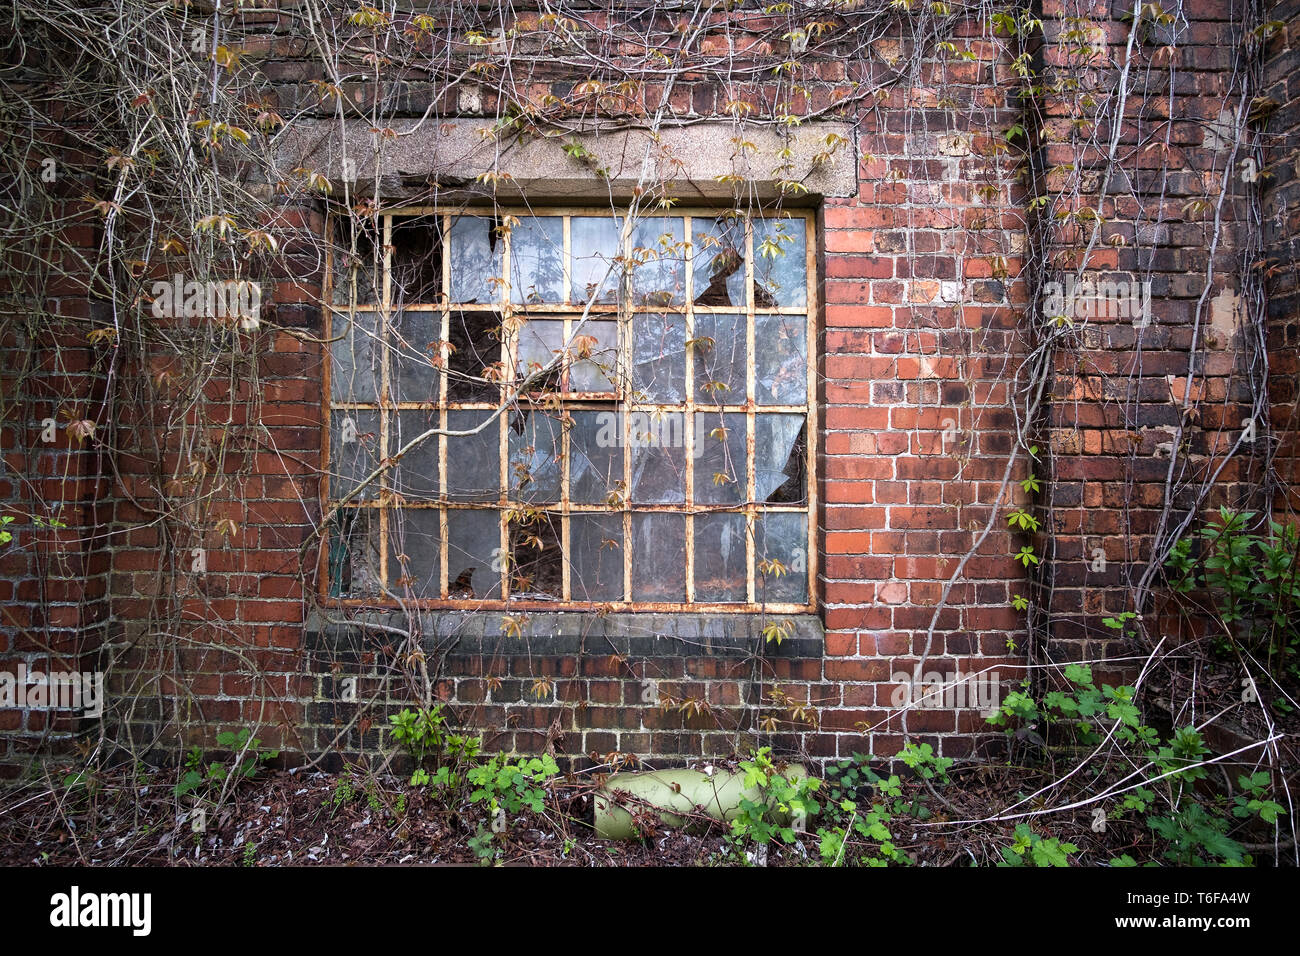 Old factory steel window frame - Stock Image